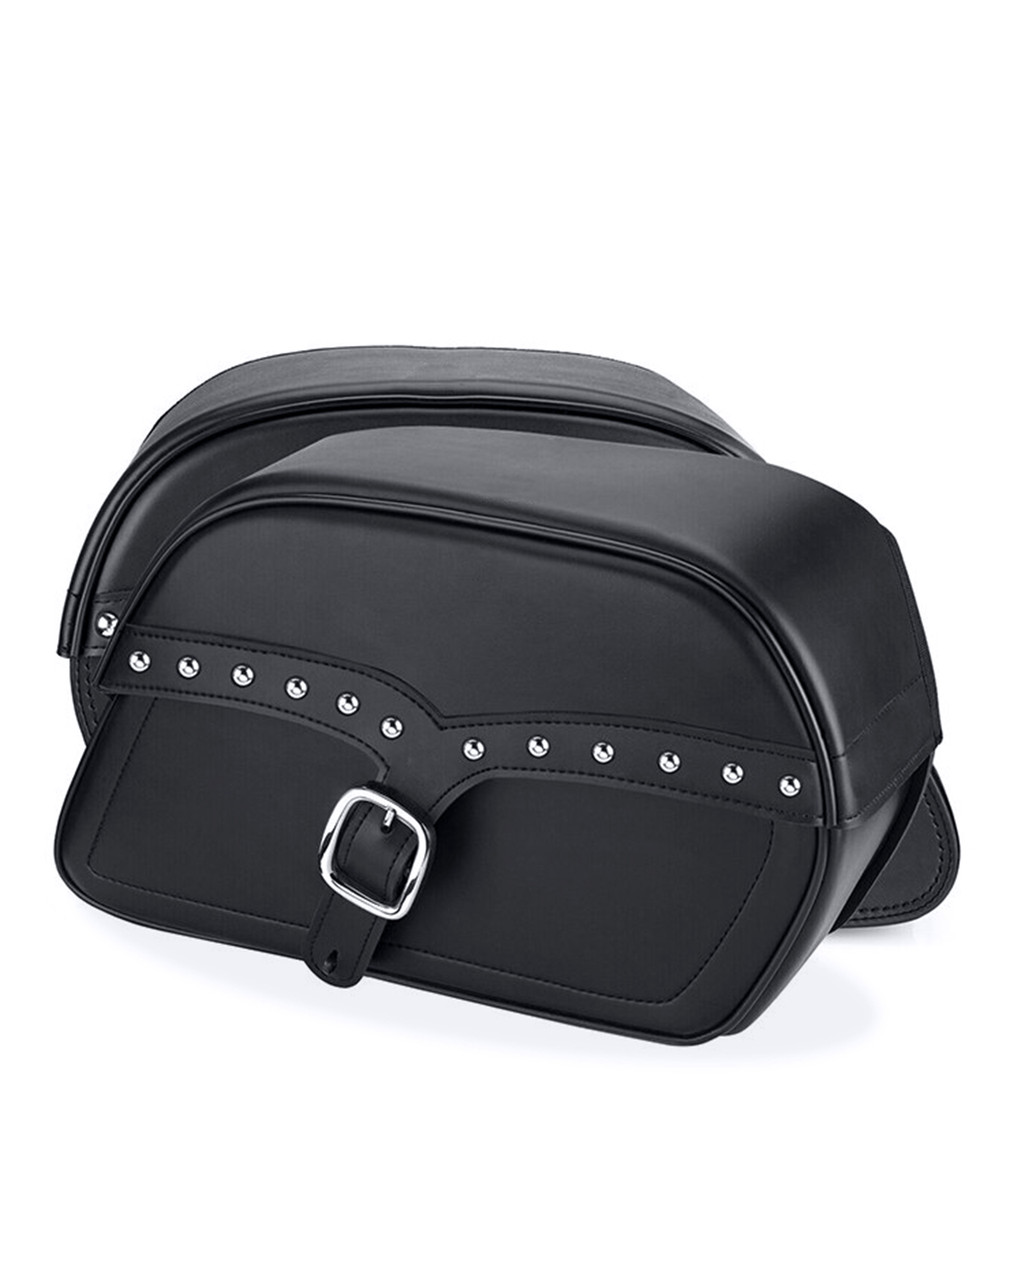 VikingBags Char SS Large Single Strap Studded Victory Boardwalk Leather Motorcycle Saddlebags Both Bags View